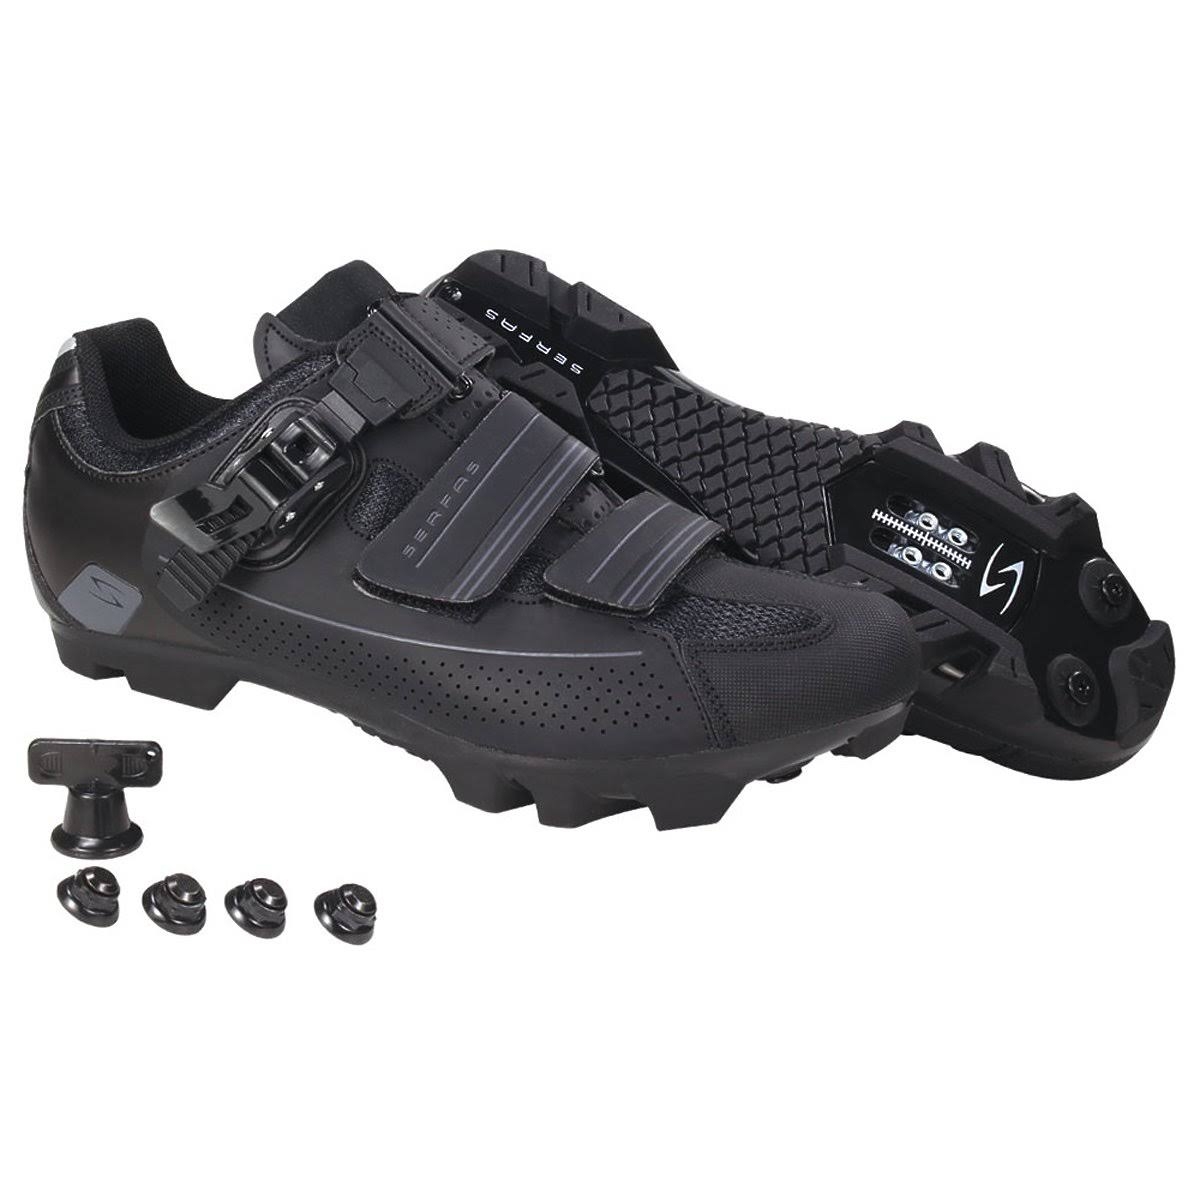 Serfas Switchback Men's MTB Shoes - Black, 43 EU